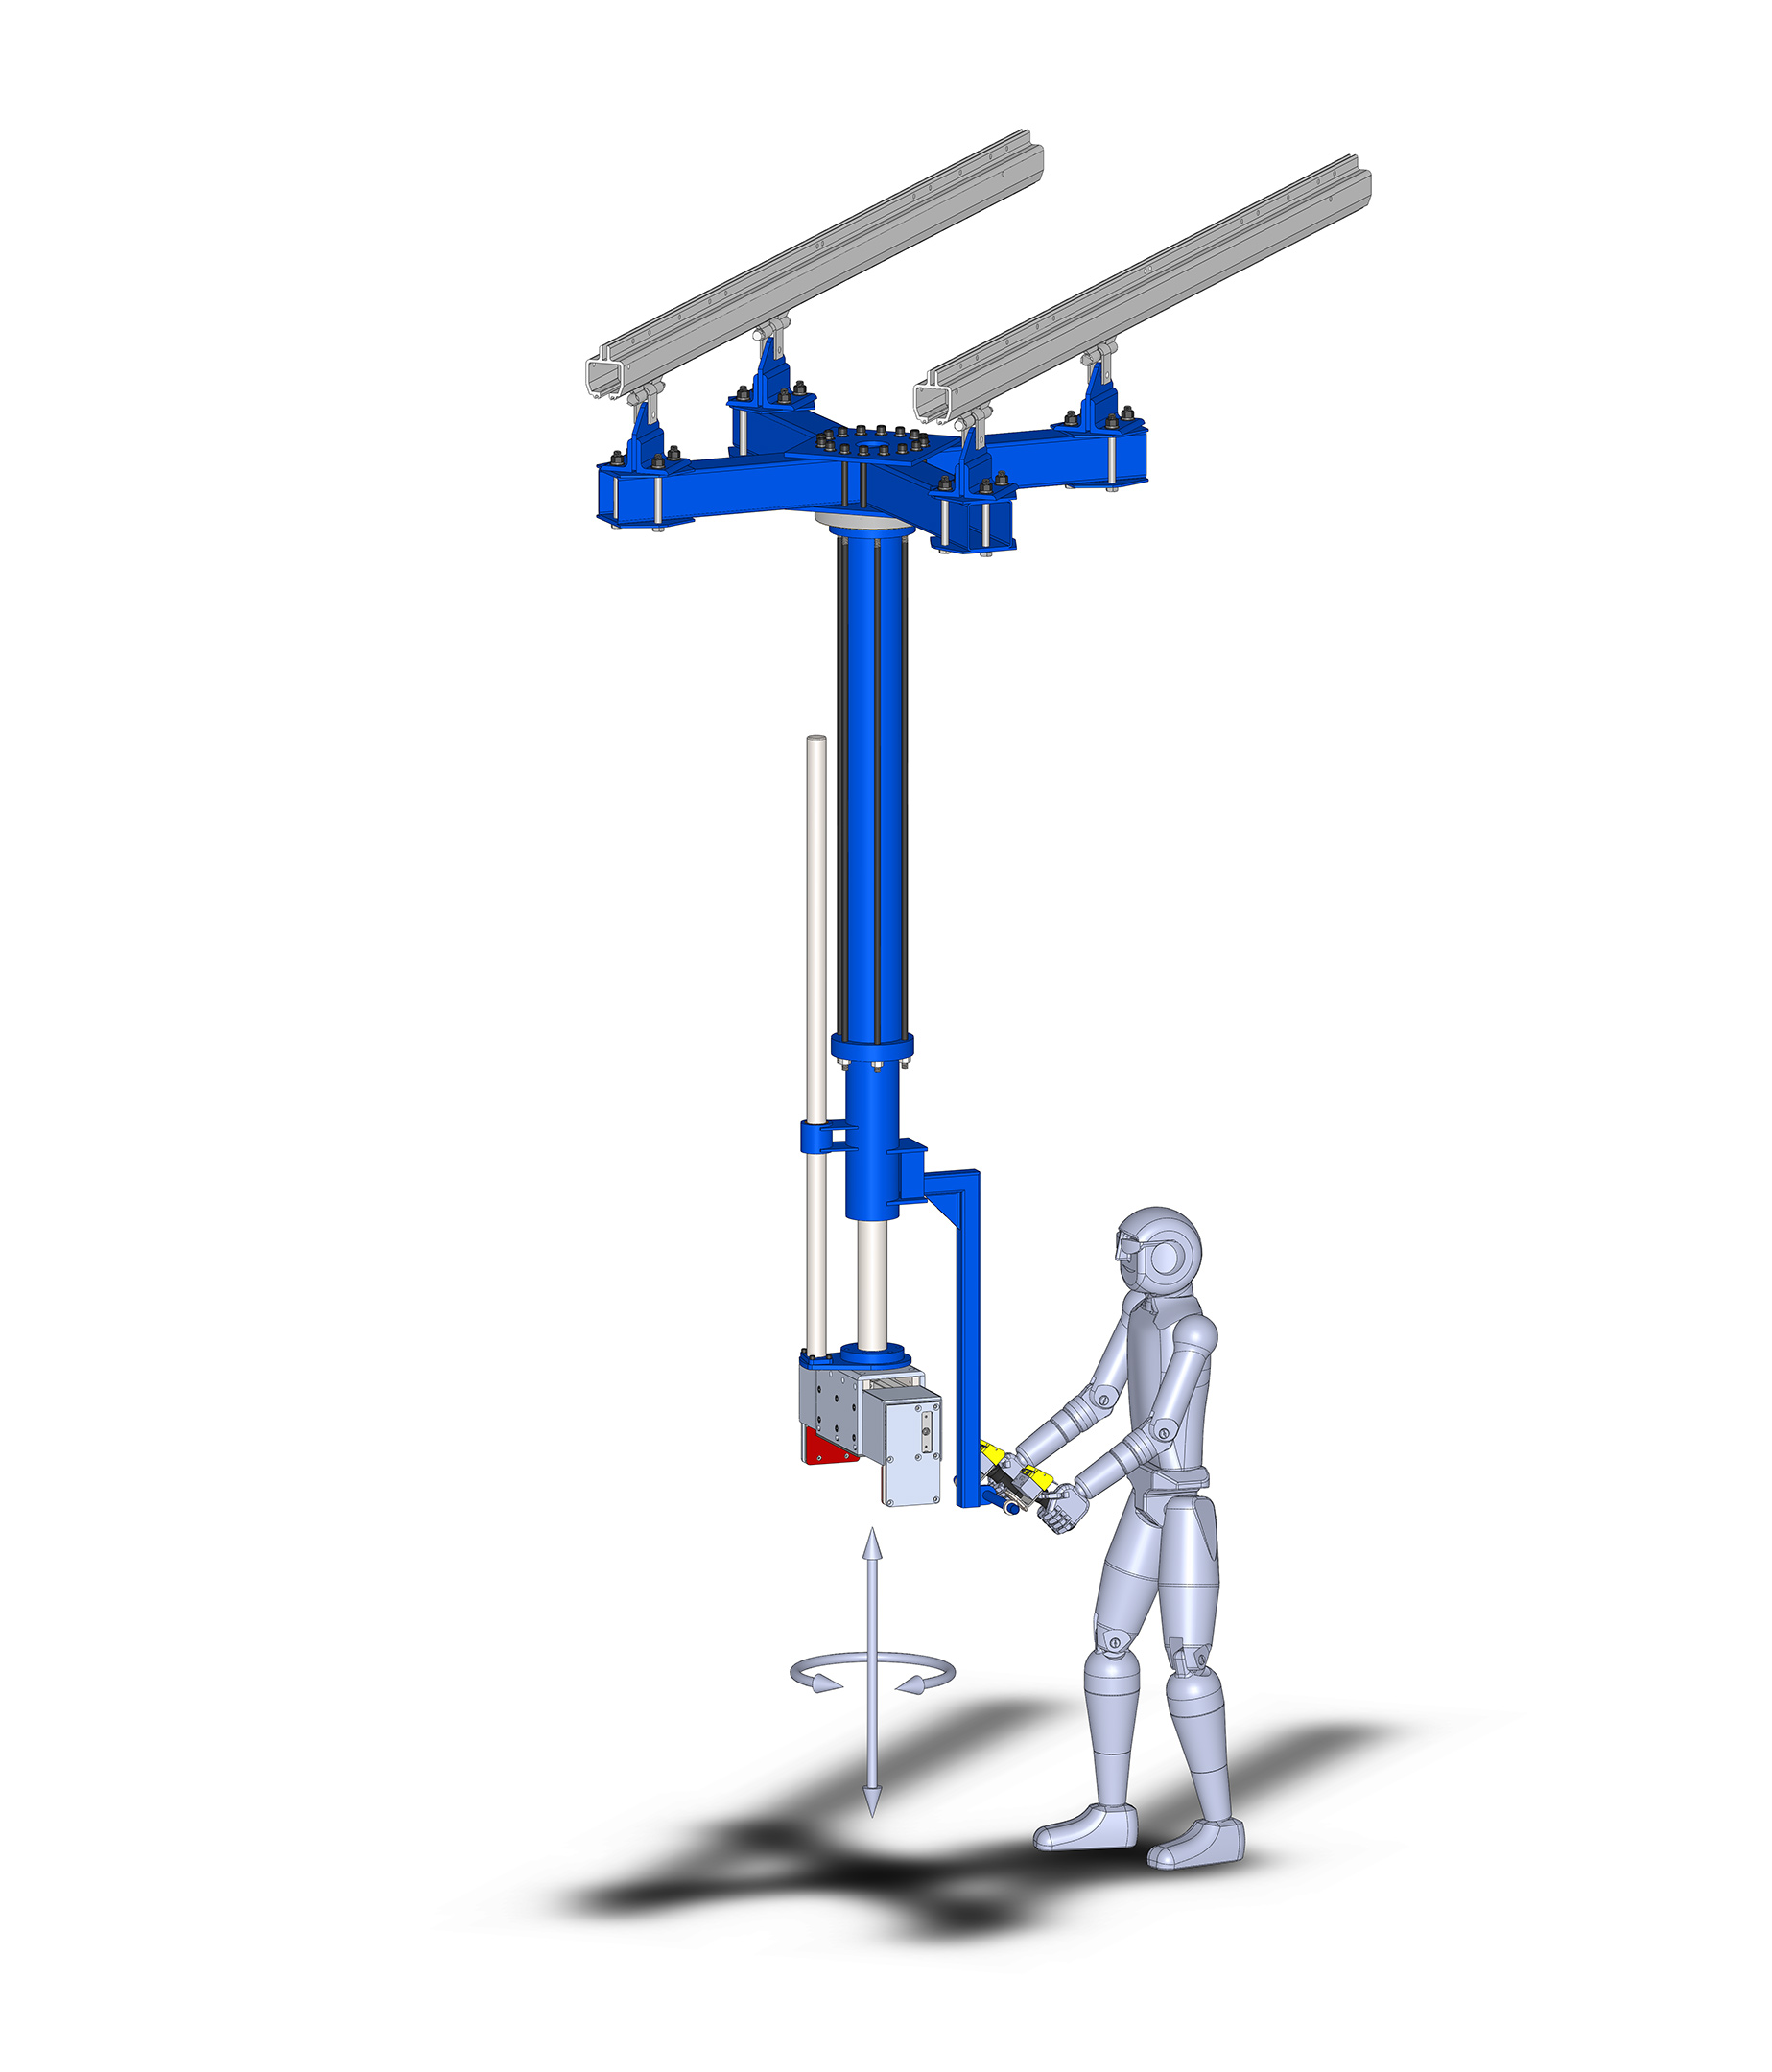 Lift Assist Arm : Manipulator arms hydraulic pneumatic vertical lifters